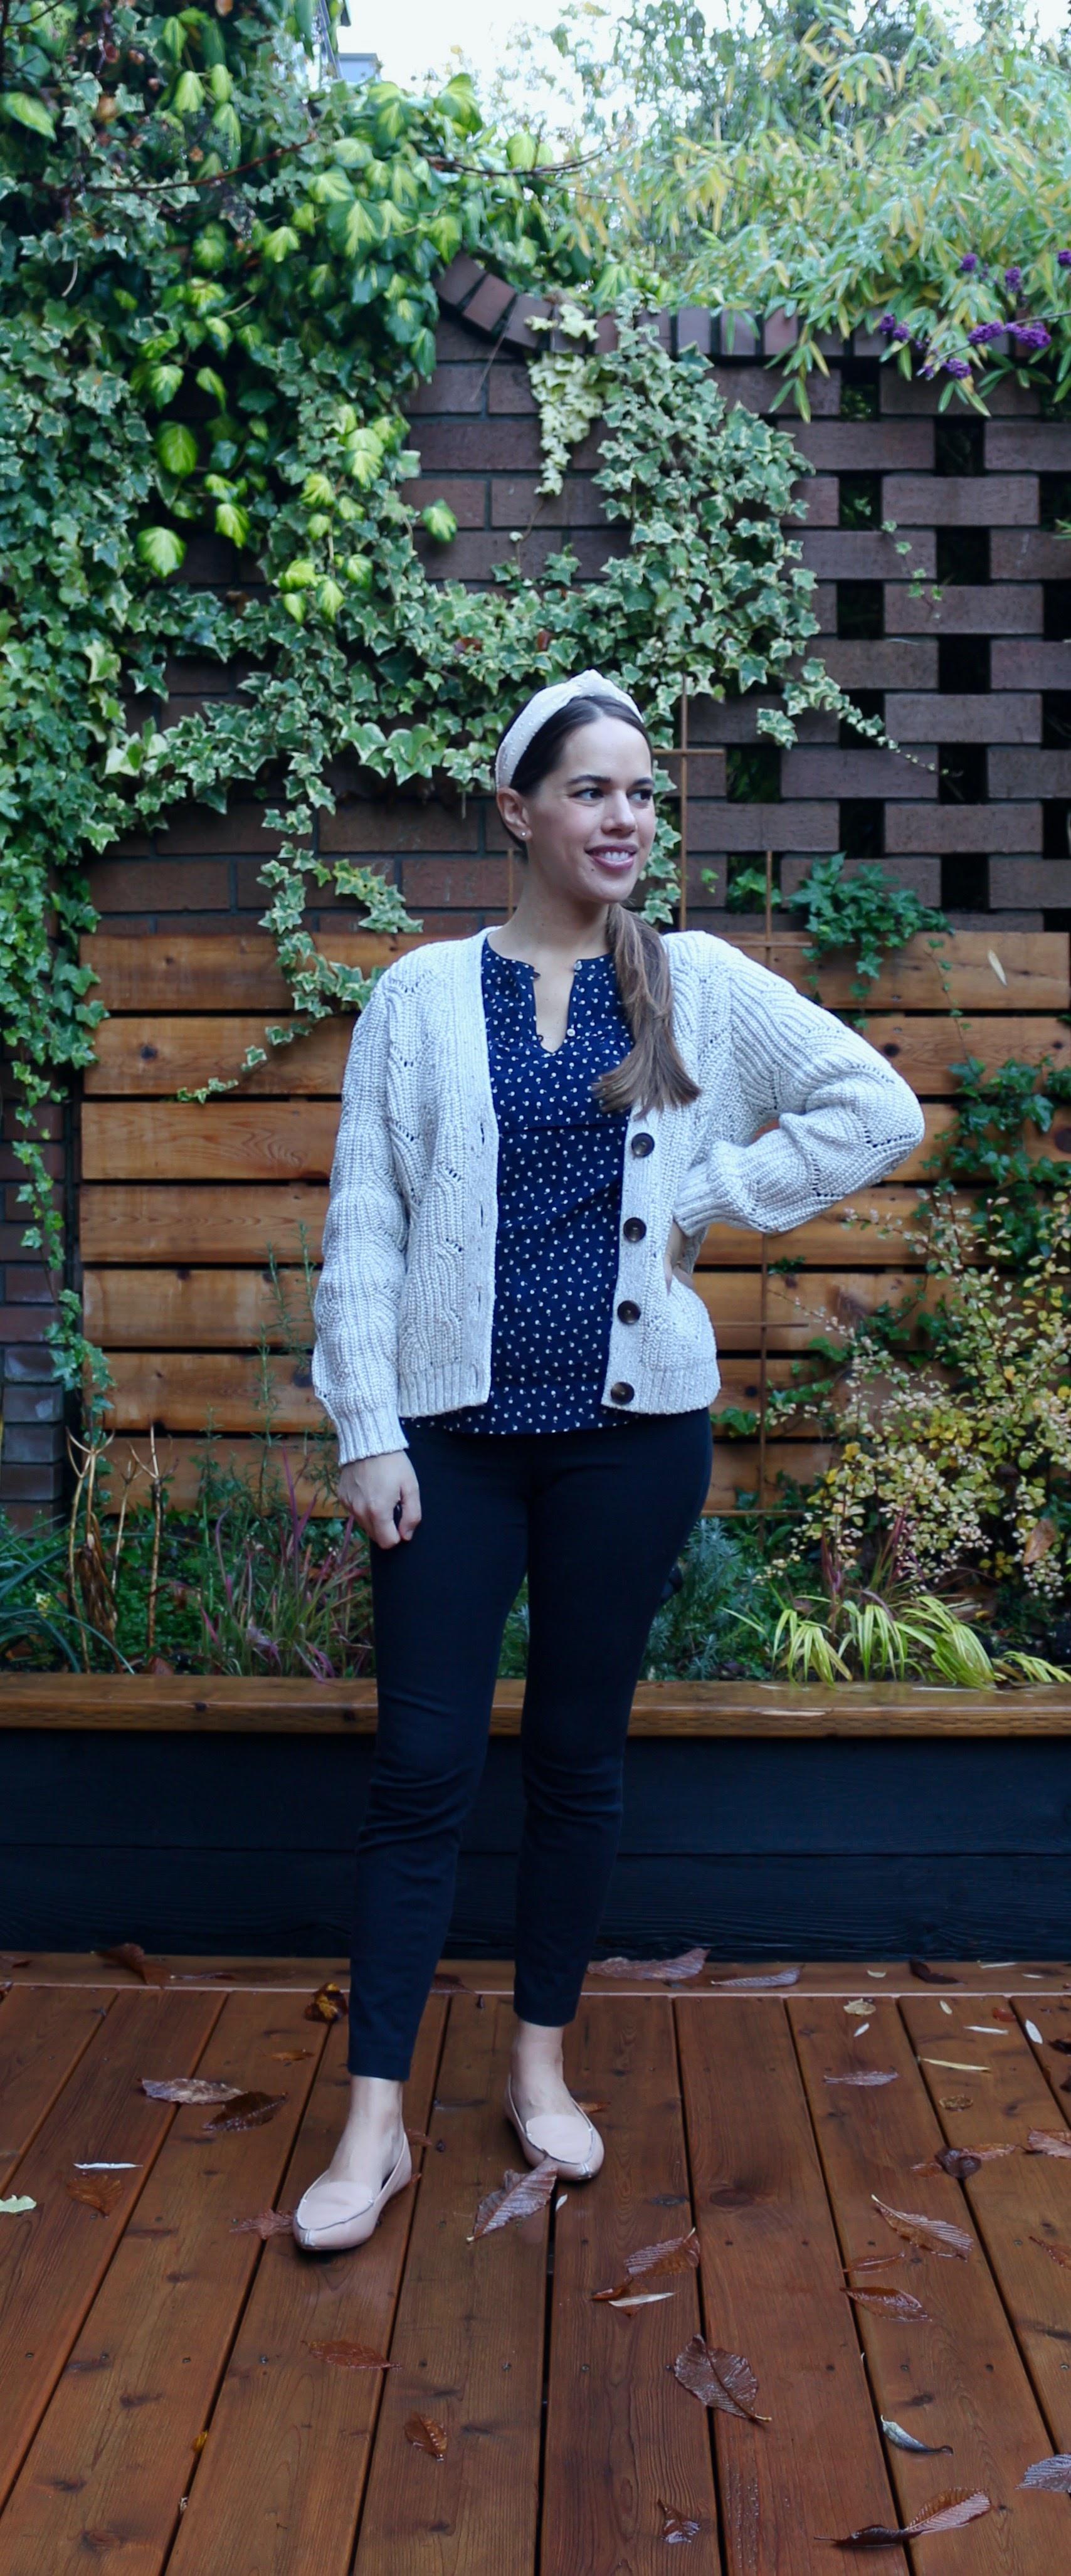 Jules in Flats - Chunky Knit Cardigan with Ruffle Top (Business Casual Workwear on a Budget)